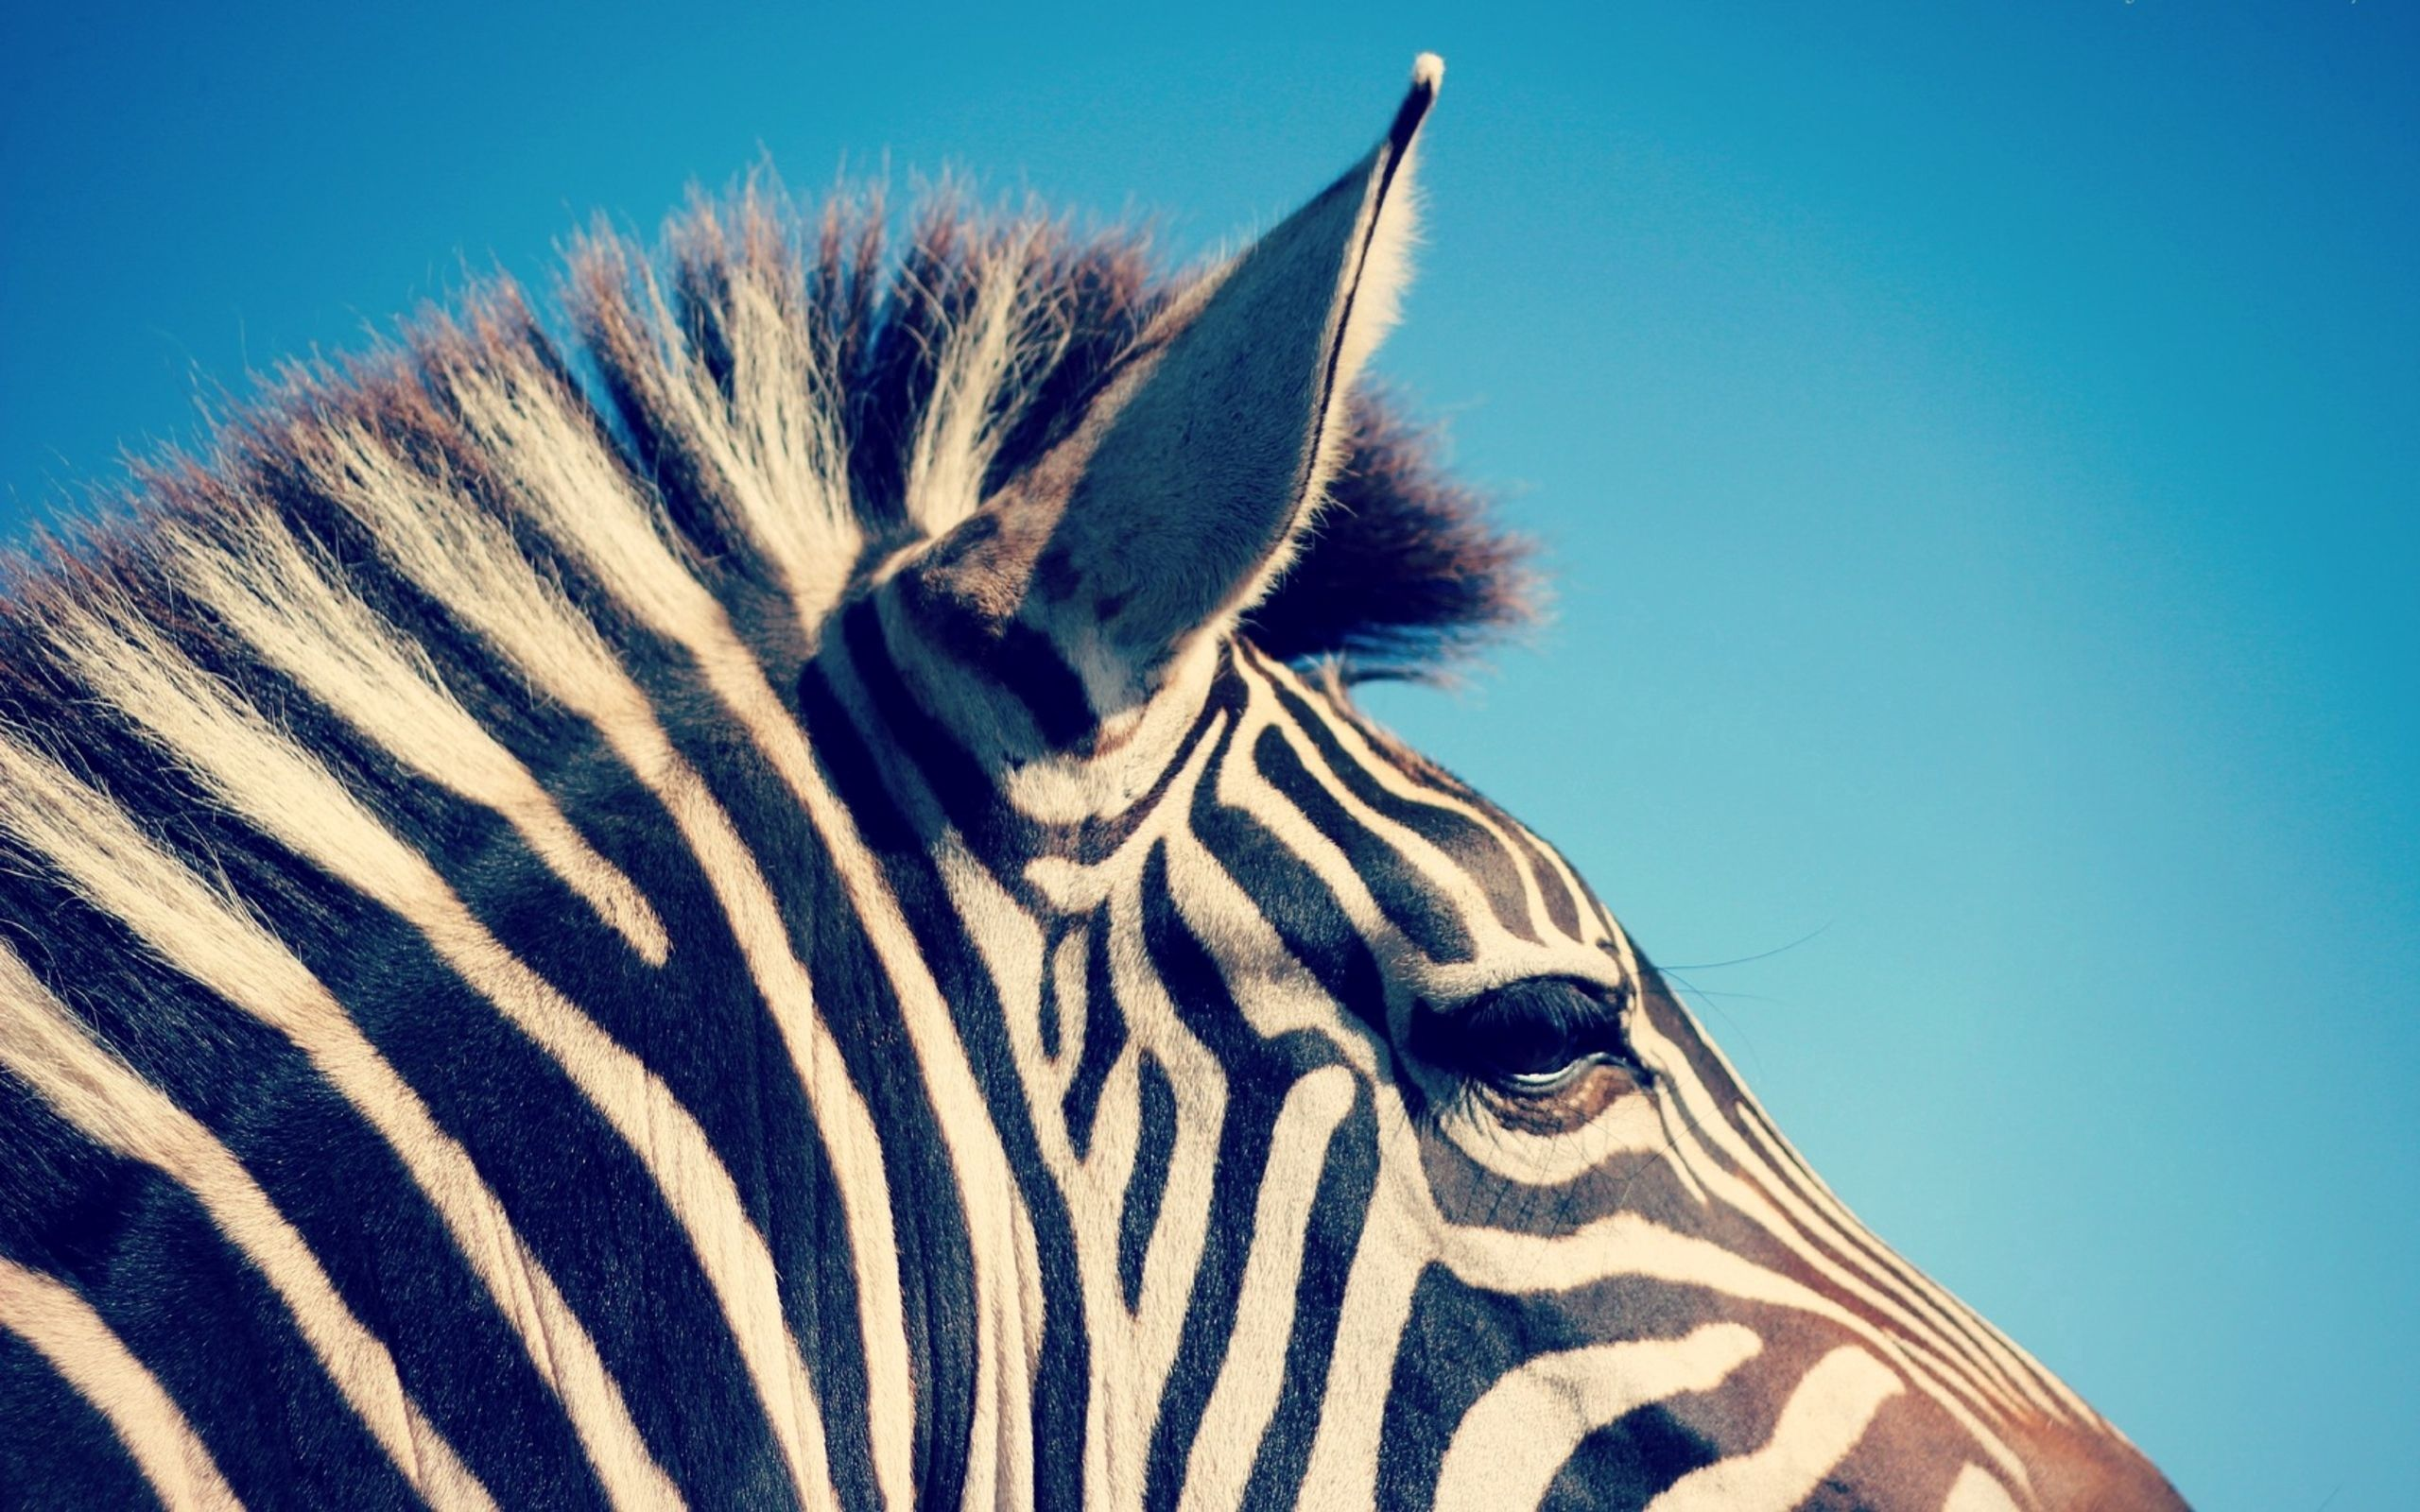 149821 download wallpaper Animals, Zebra, Head, Stripes, Streaks screensavers and pictures for free